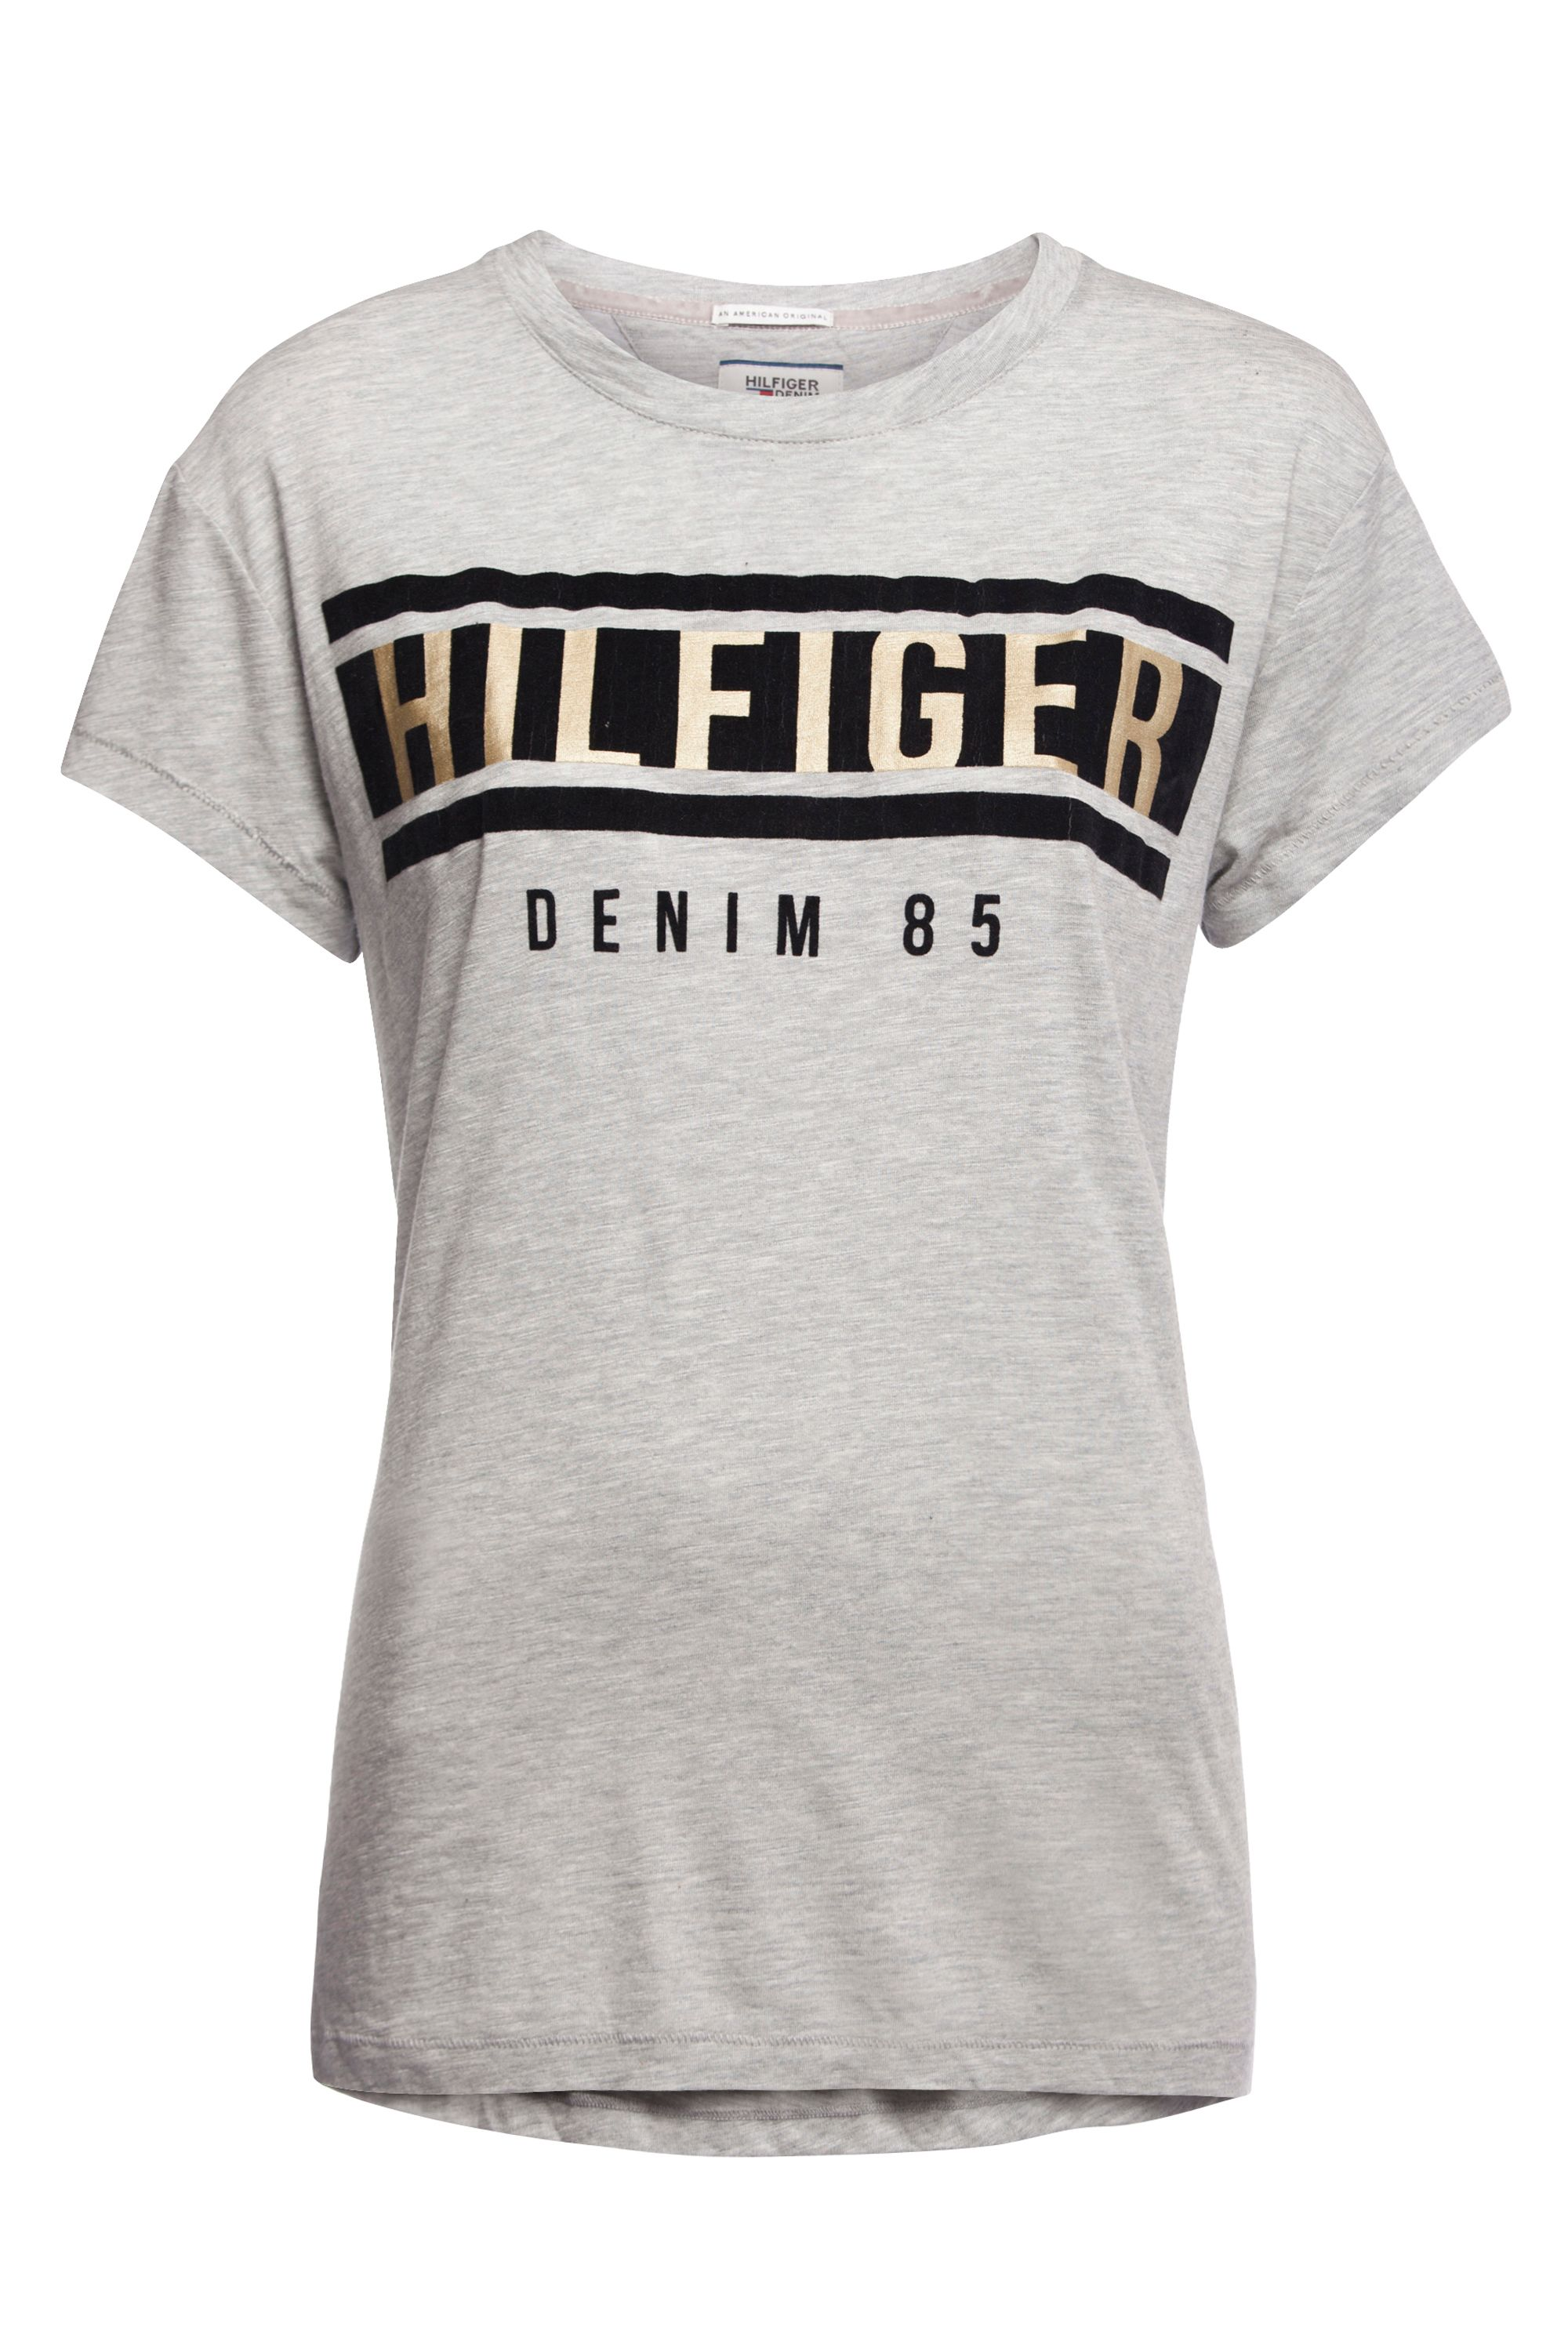 tommy hilfiger logo t shirt house of fraser. Black Bedroom Furniture Sets. Home Design Ideas